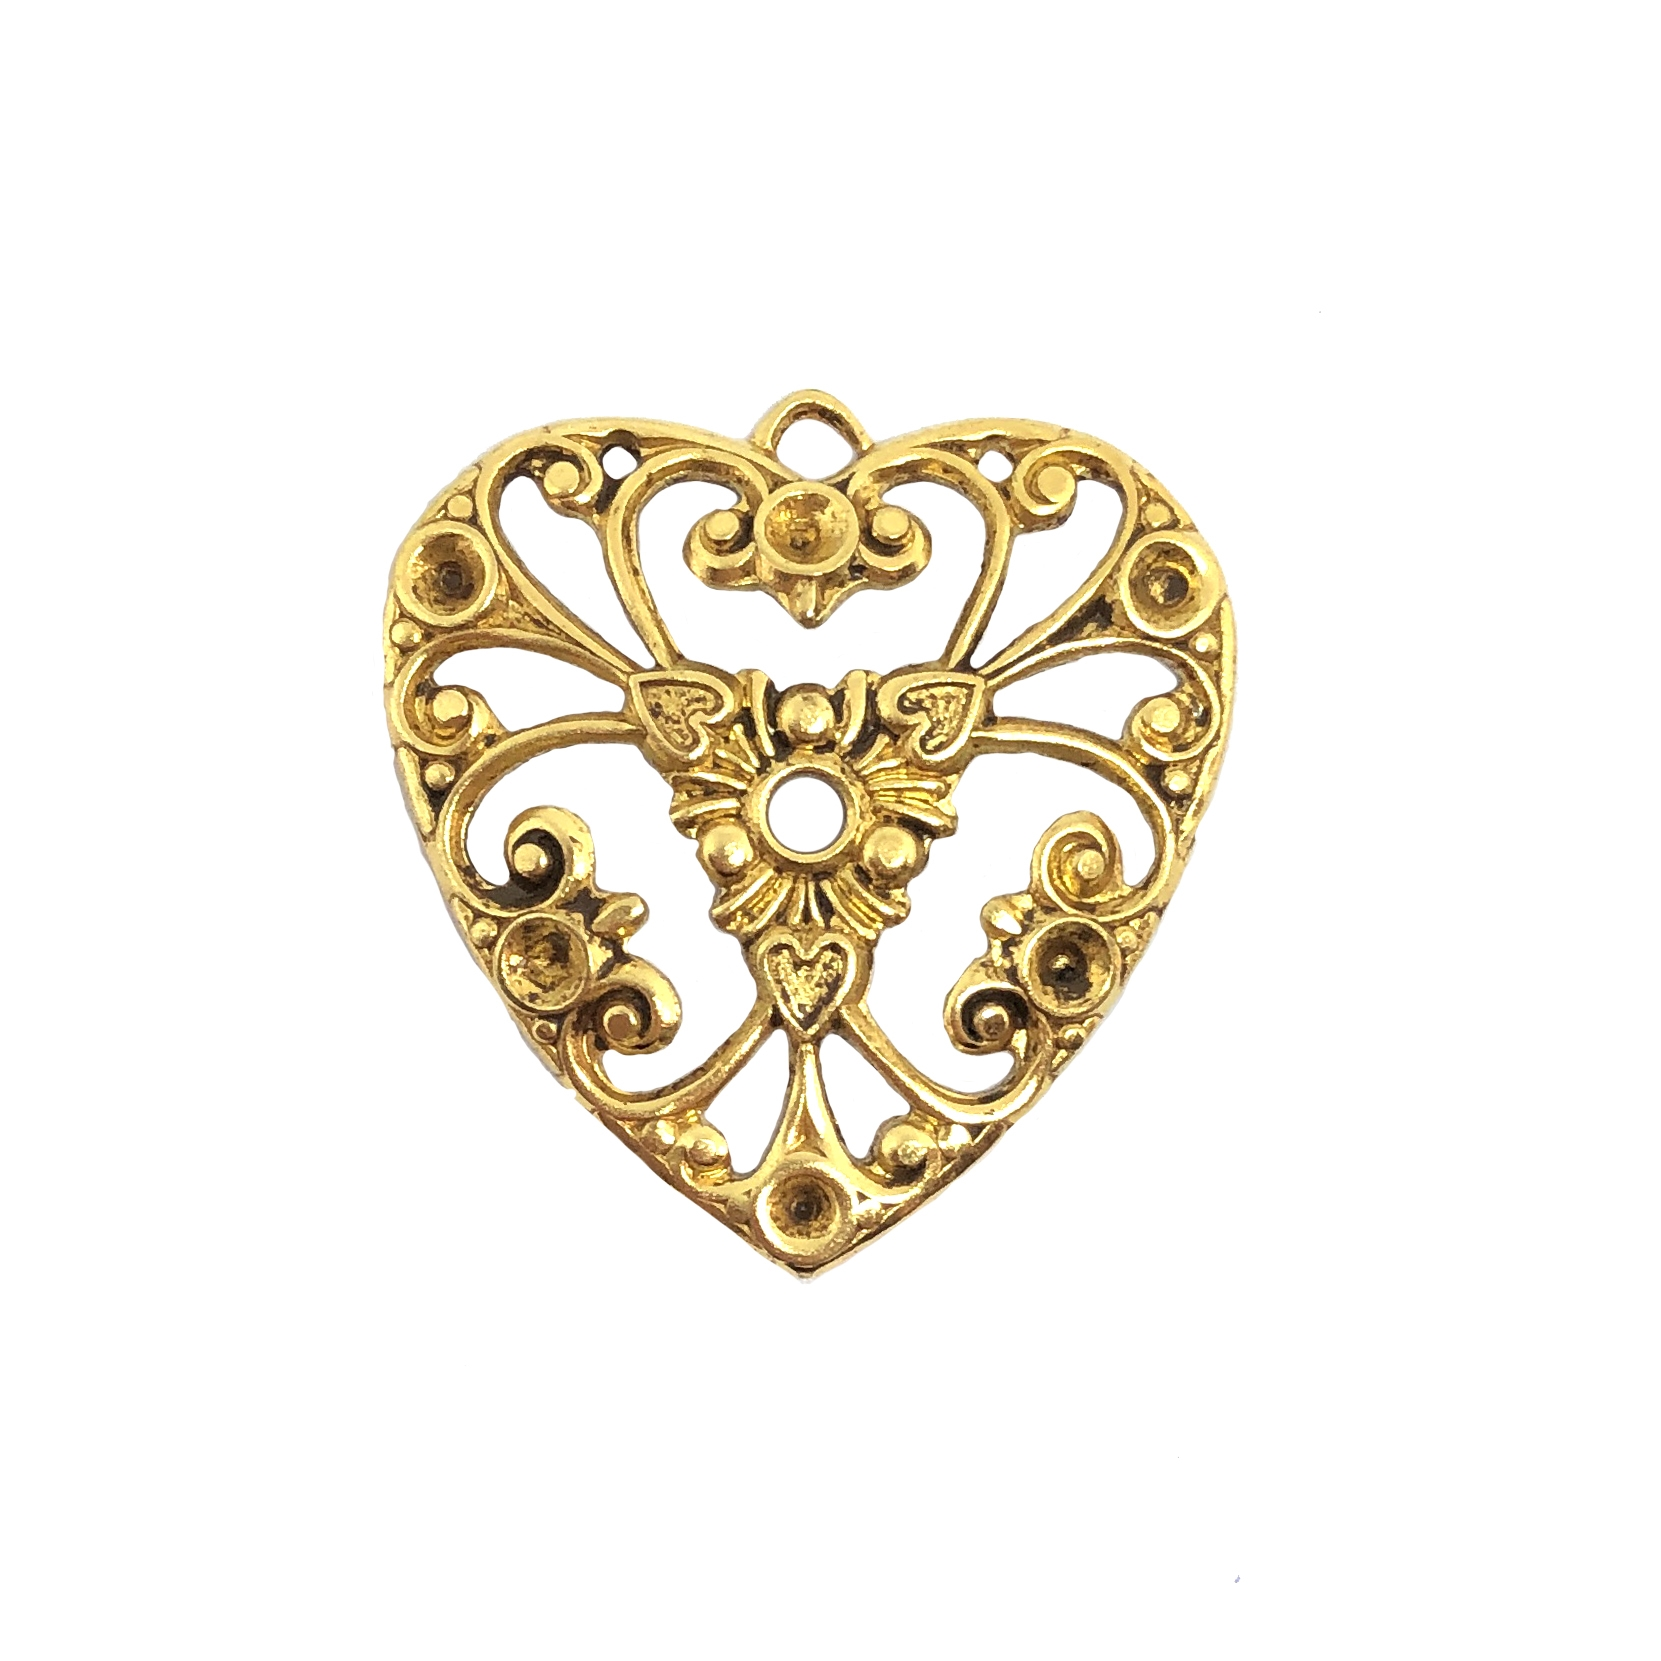 filigree heart charm, classic gold, pendant, plated brass, filigree, heart, charm, stone sets, brass stamping, heart filigree, brass, us made, nickel free, B'sue Boutiques, 27x26mm, jewelry making, jewelry supplies, vintage supplies, 09749